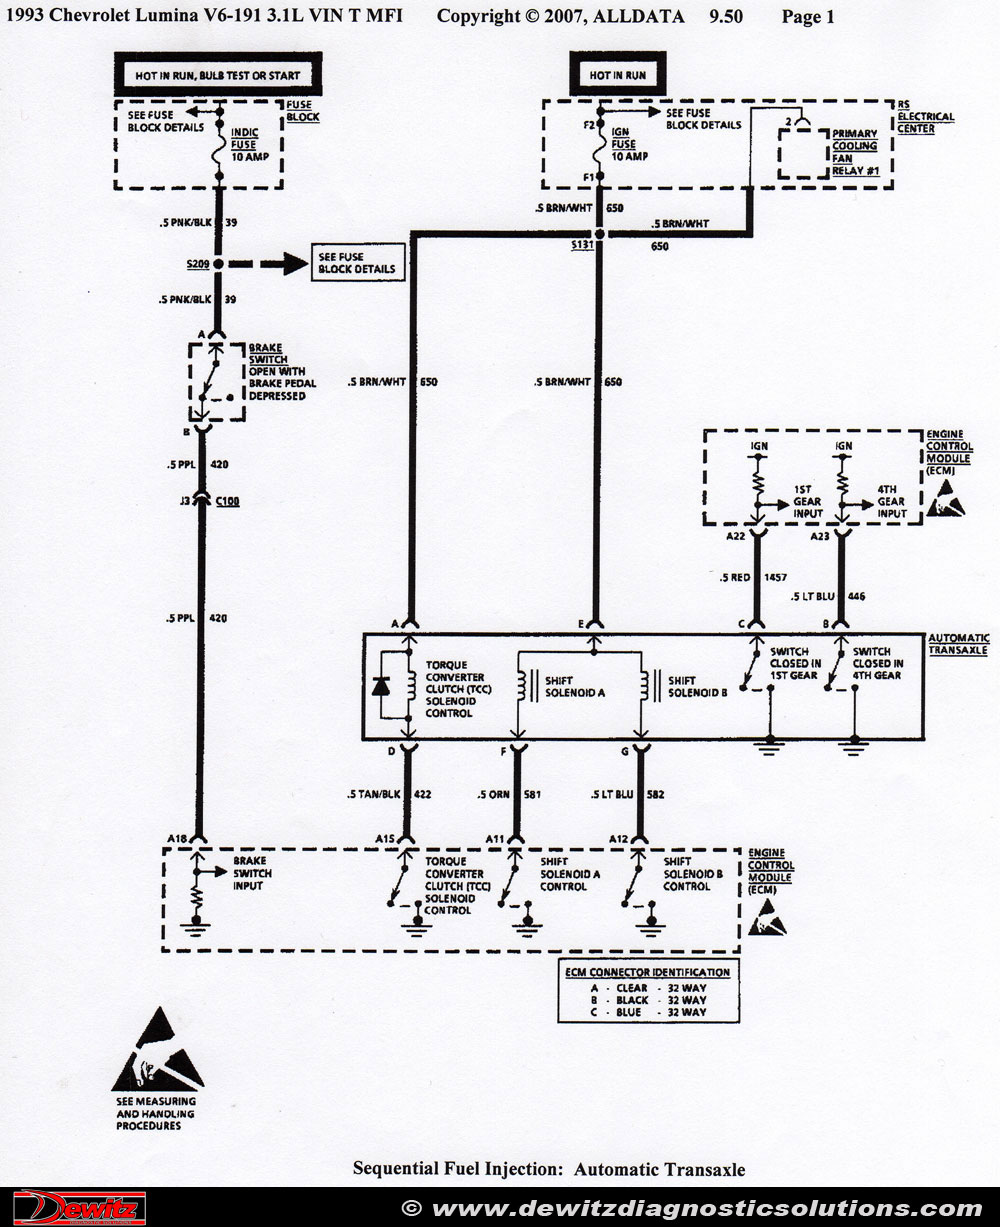 4t60e Transmission Parts Diagram Archive Of Automotive Wiring 4l60e Harness Blog About Diagrams Rh Clares Driving Co Uk